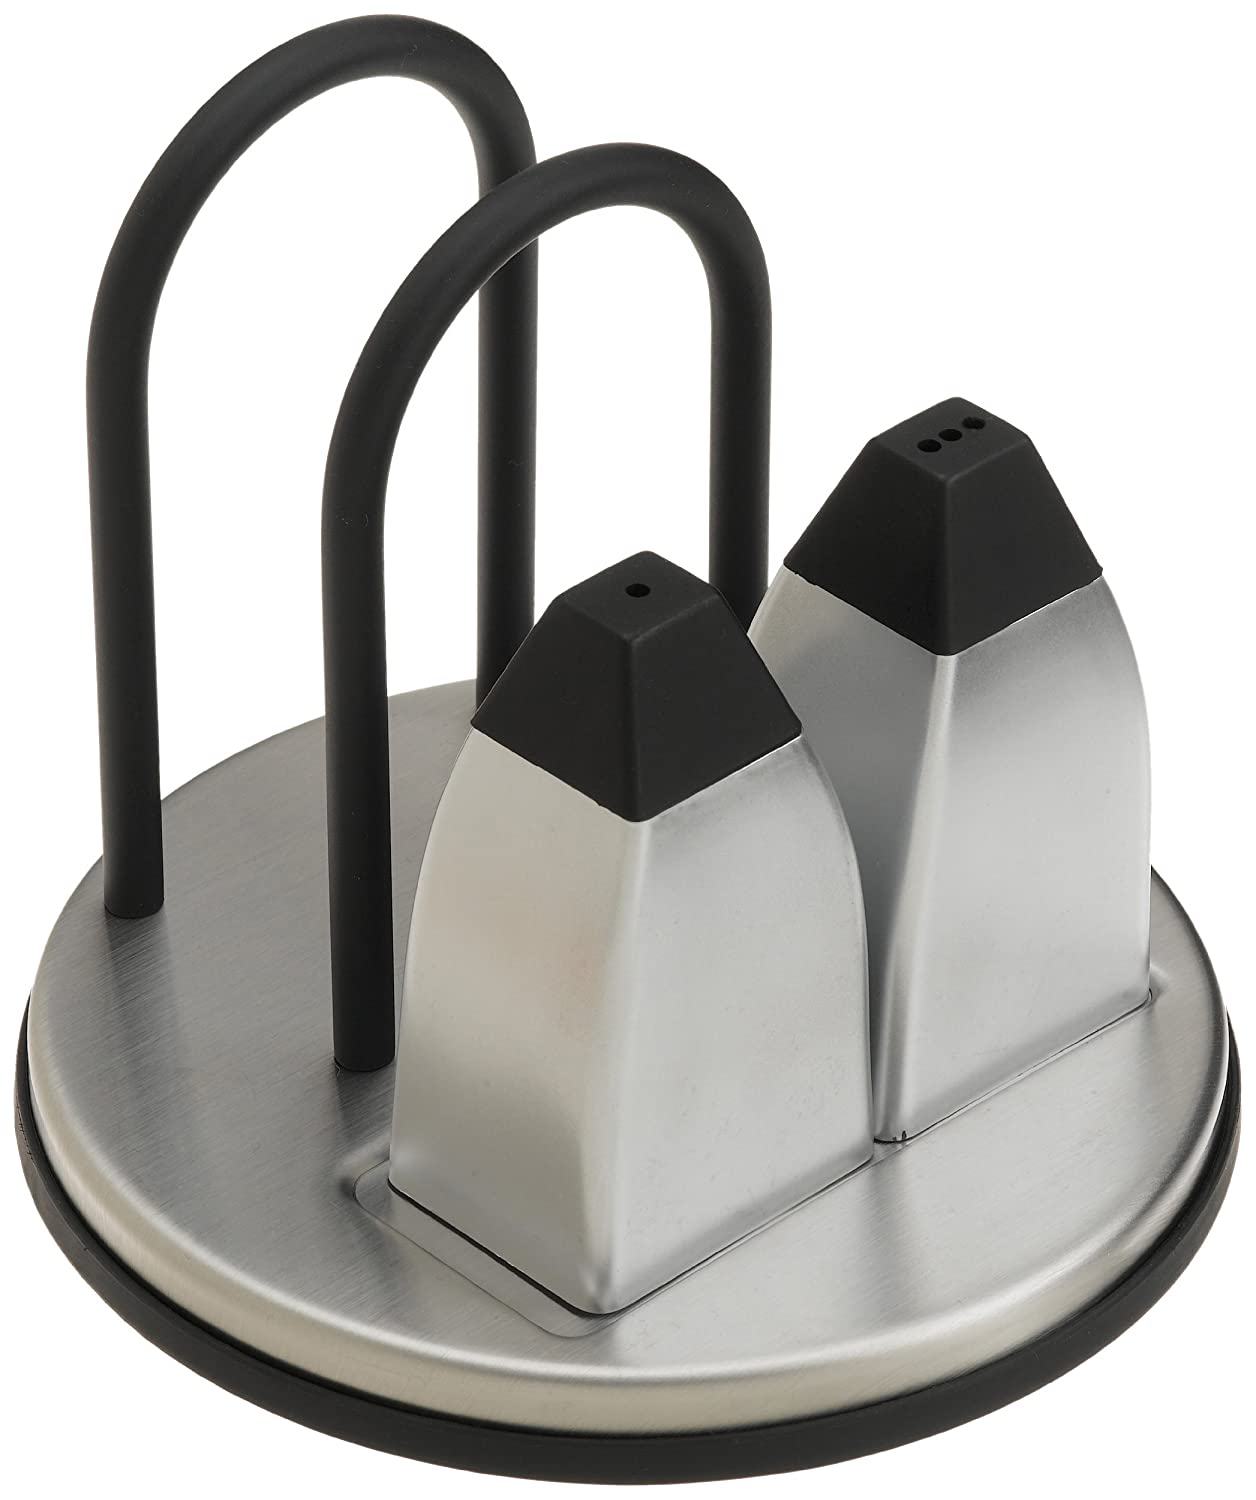 Prodyne M-915 Stainless Steel Napkin Holder with Salt and Pepper Shakers